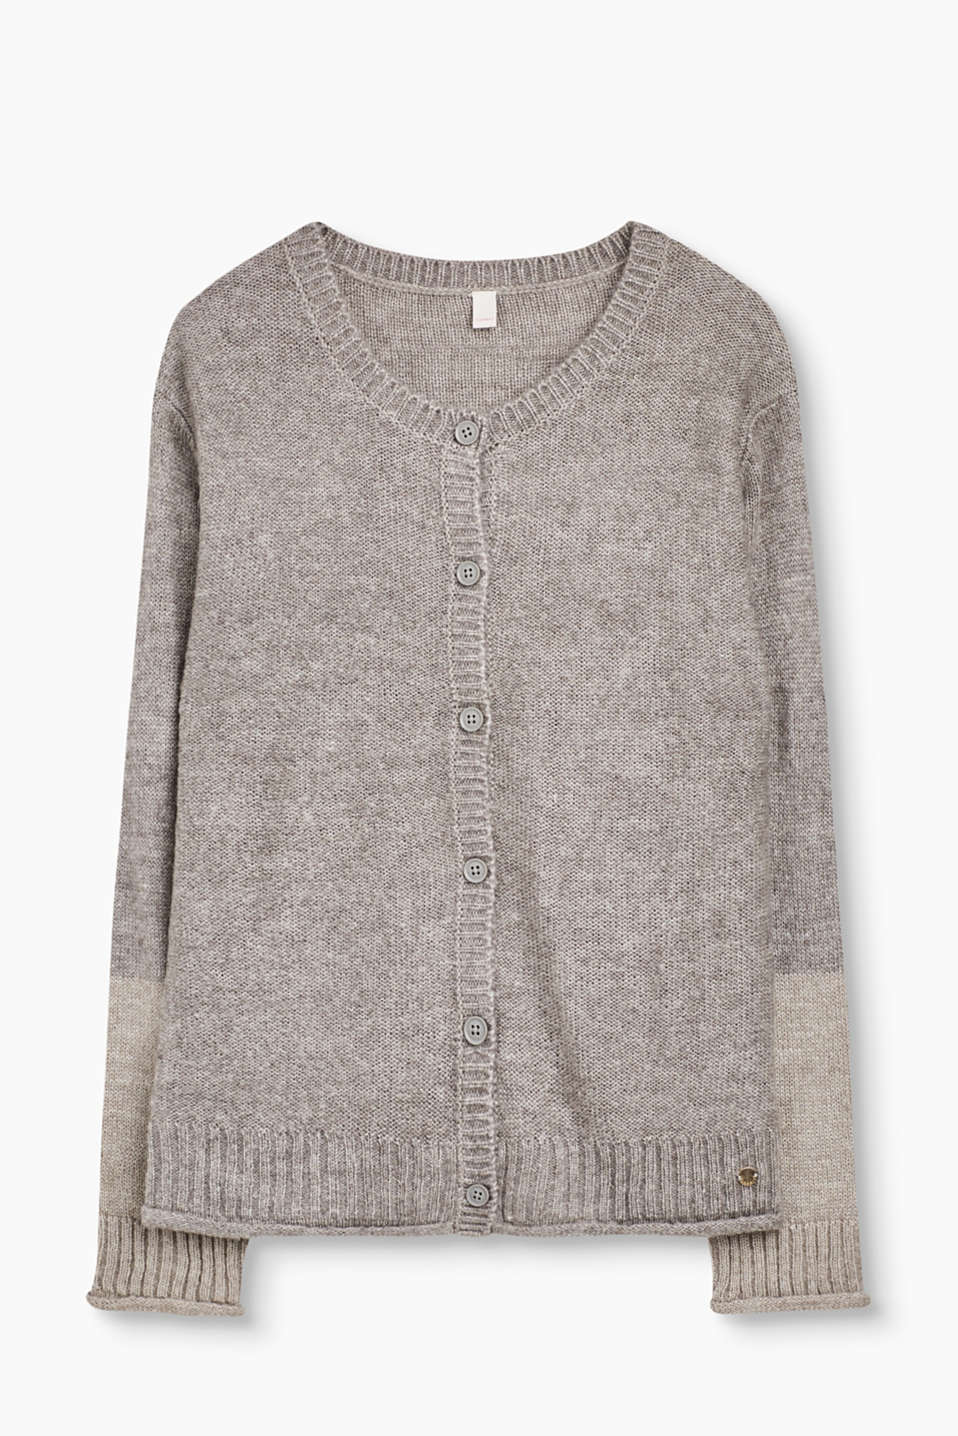 This simple knitted cardigan can be combined in many different ways